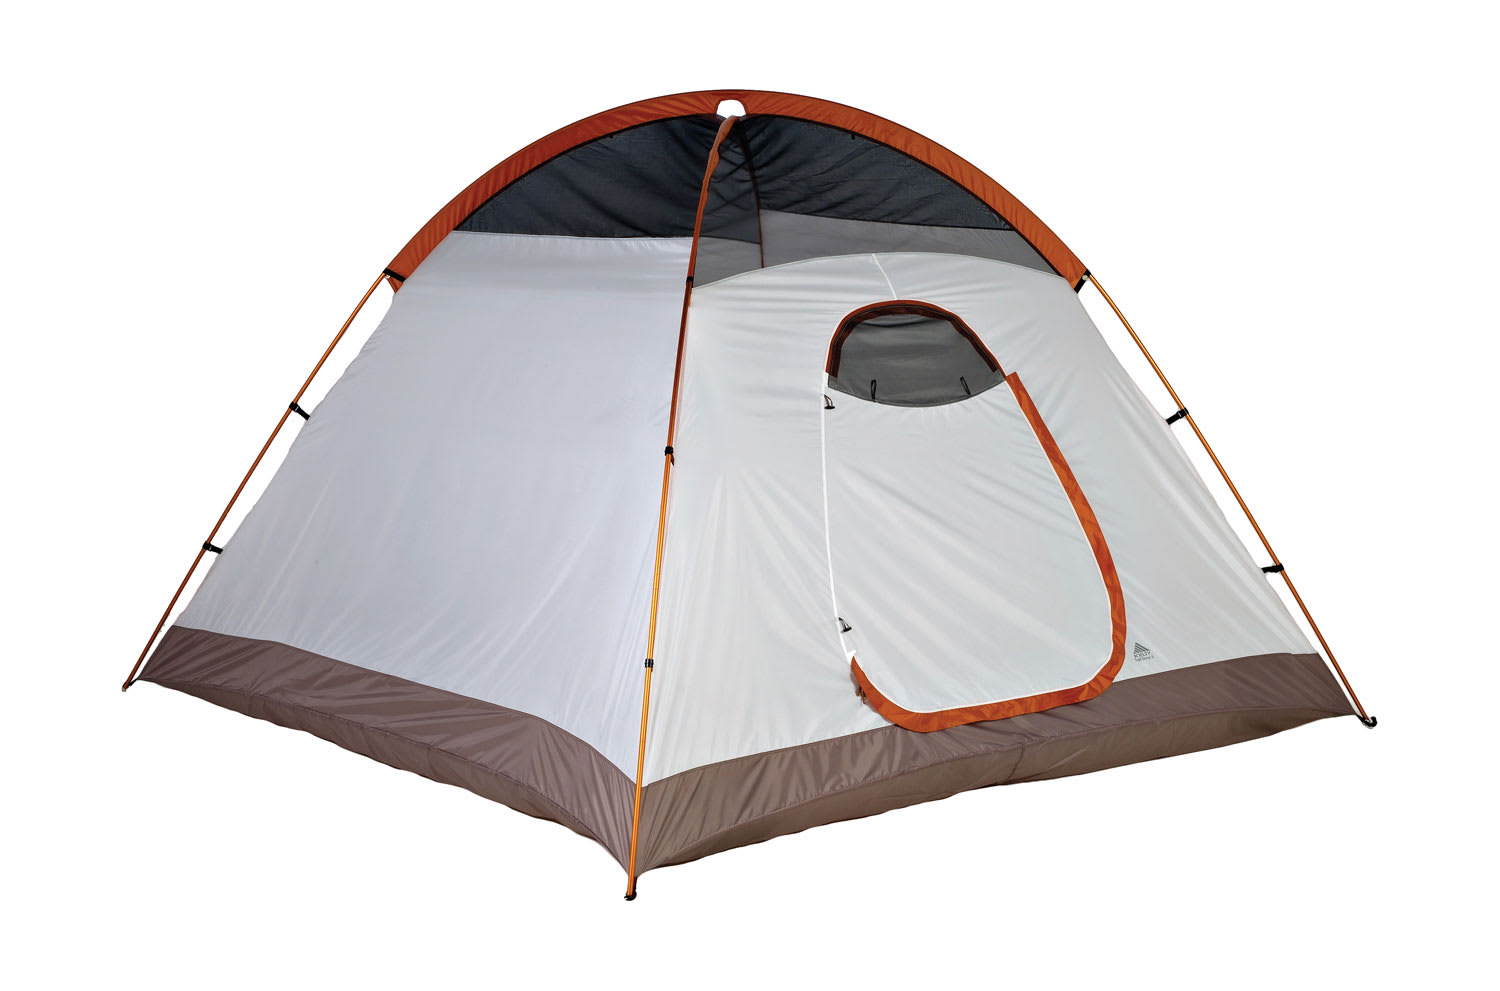 Kelty Trail Dome 4 Person Tent